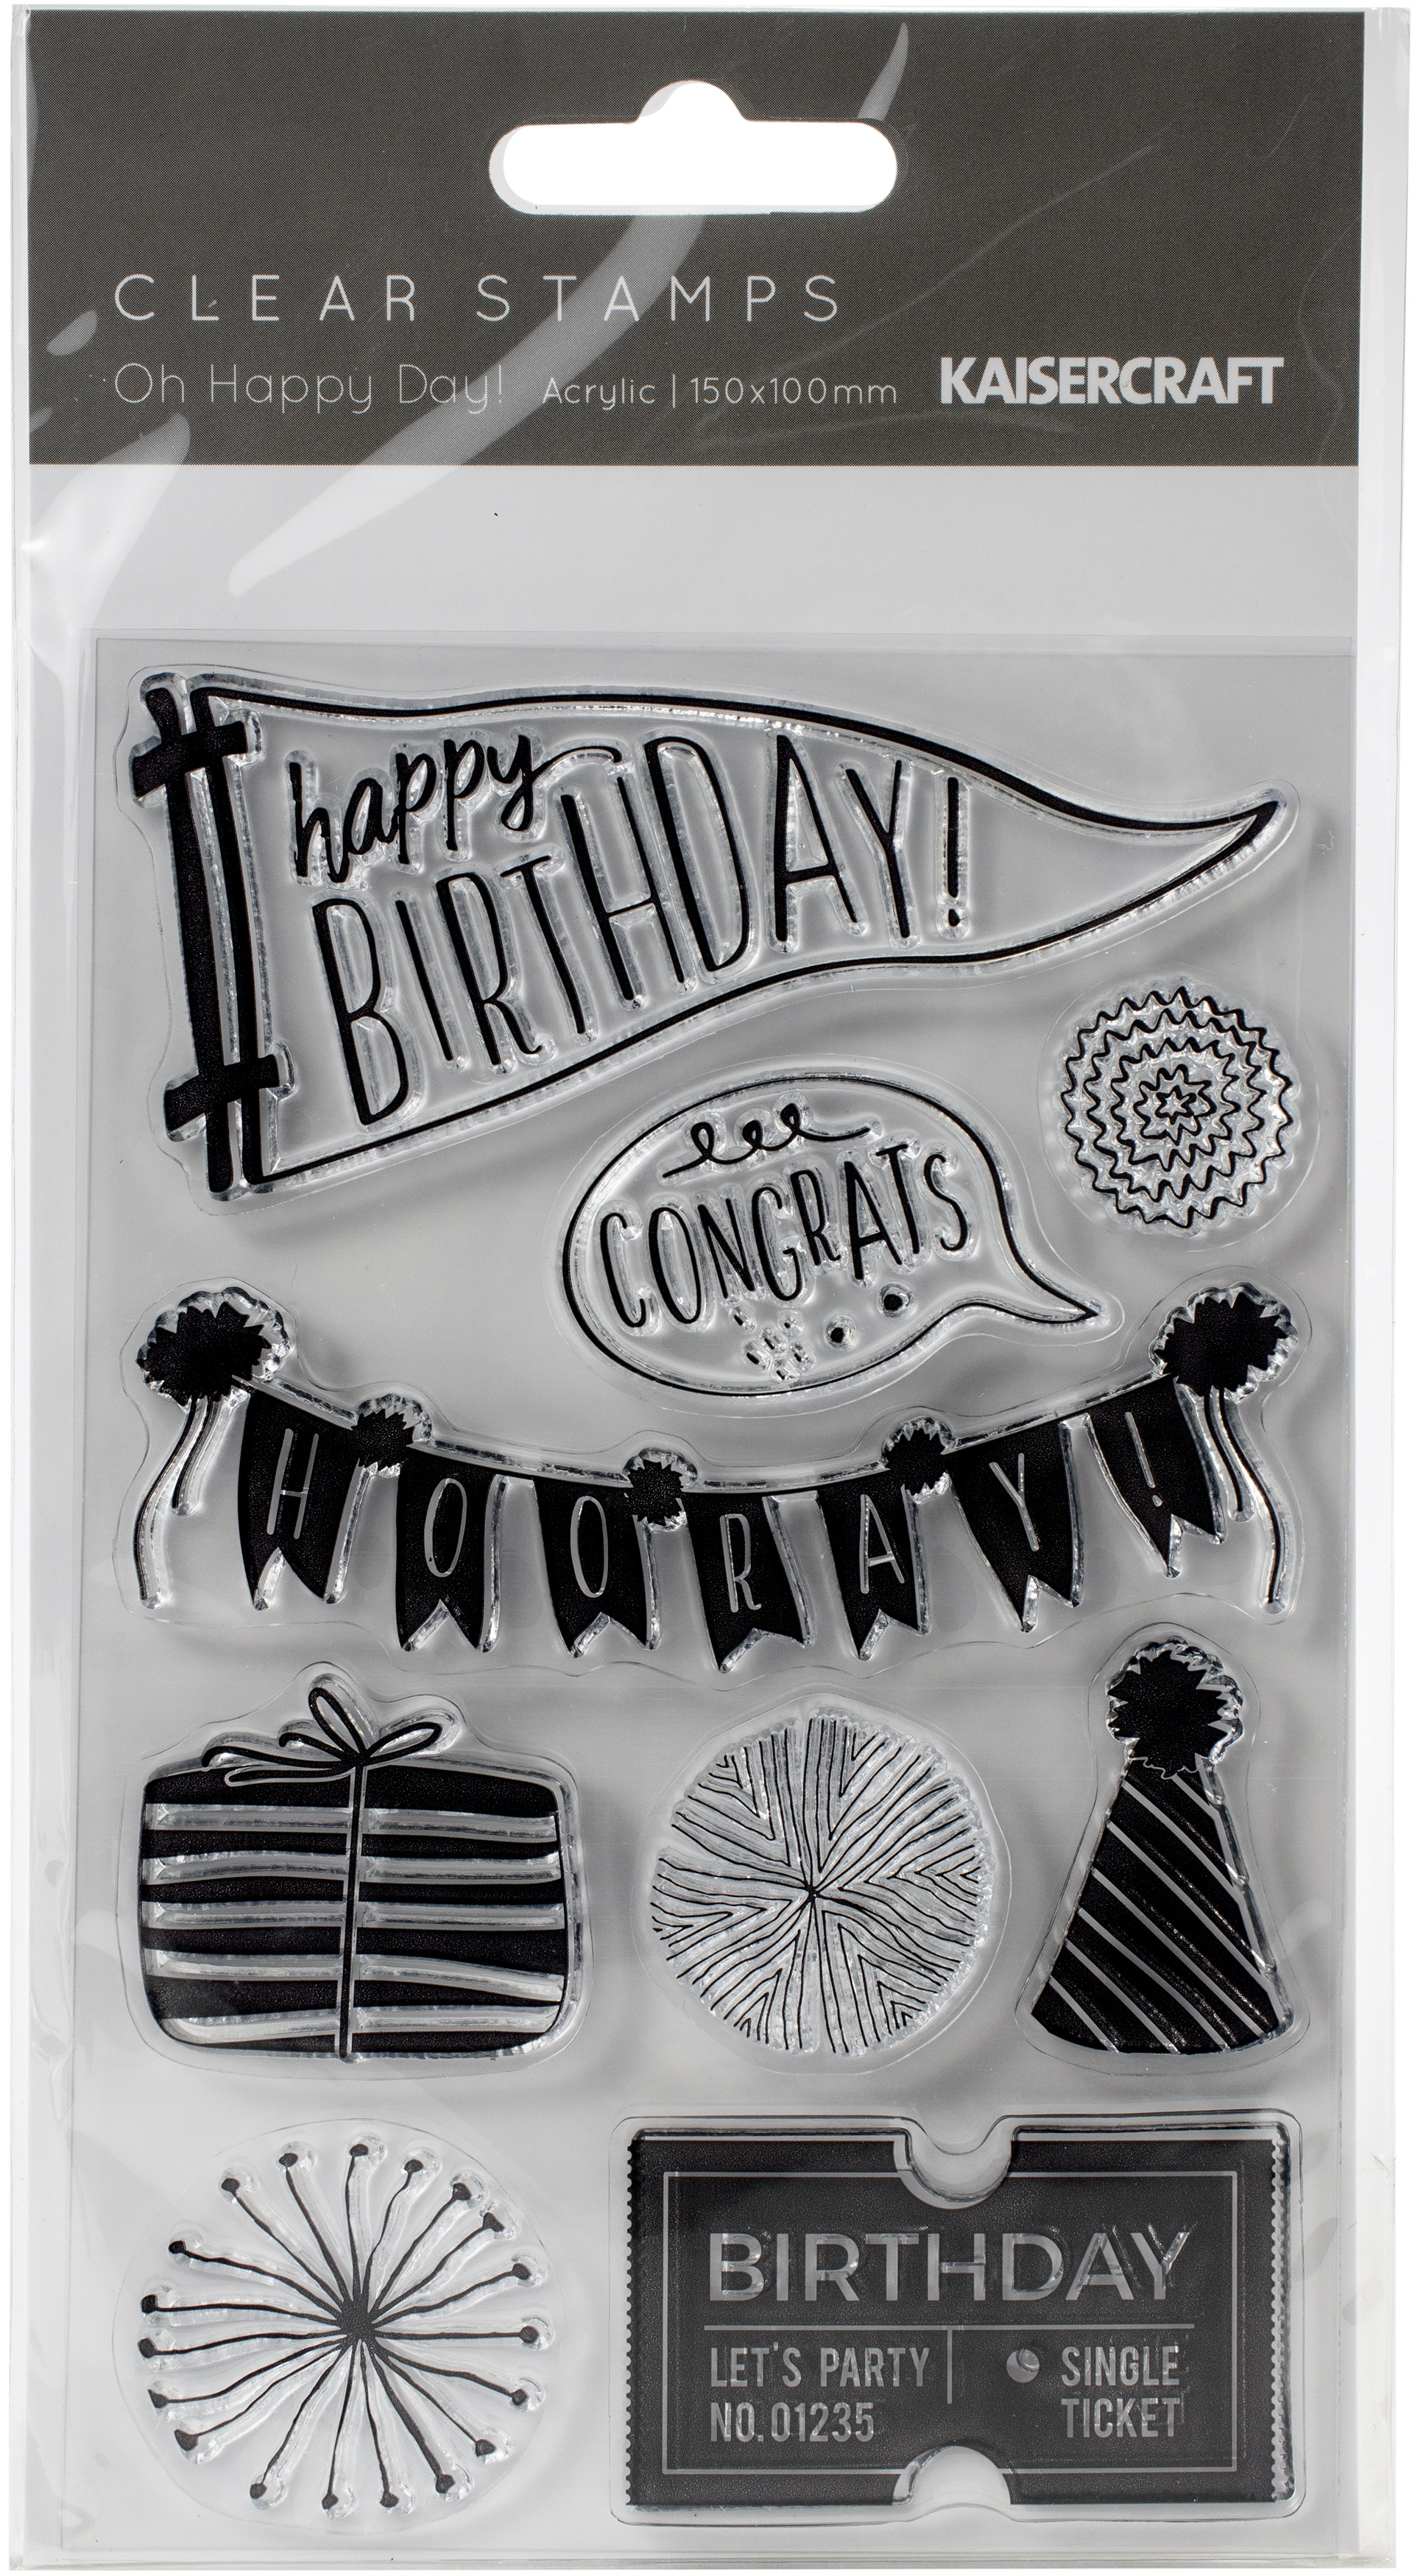 ^Kaisercraft Clear Stamps - Oh Happy Day!